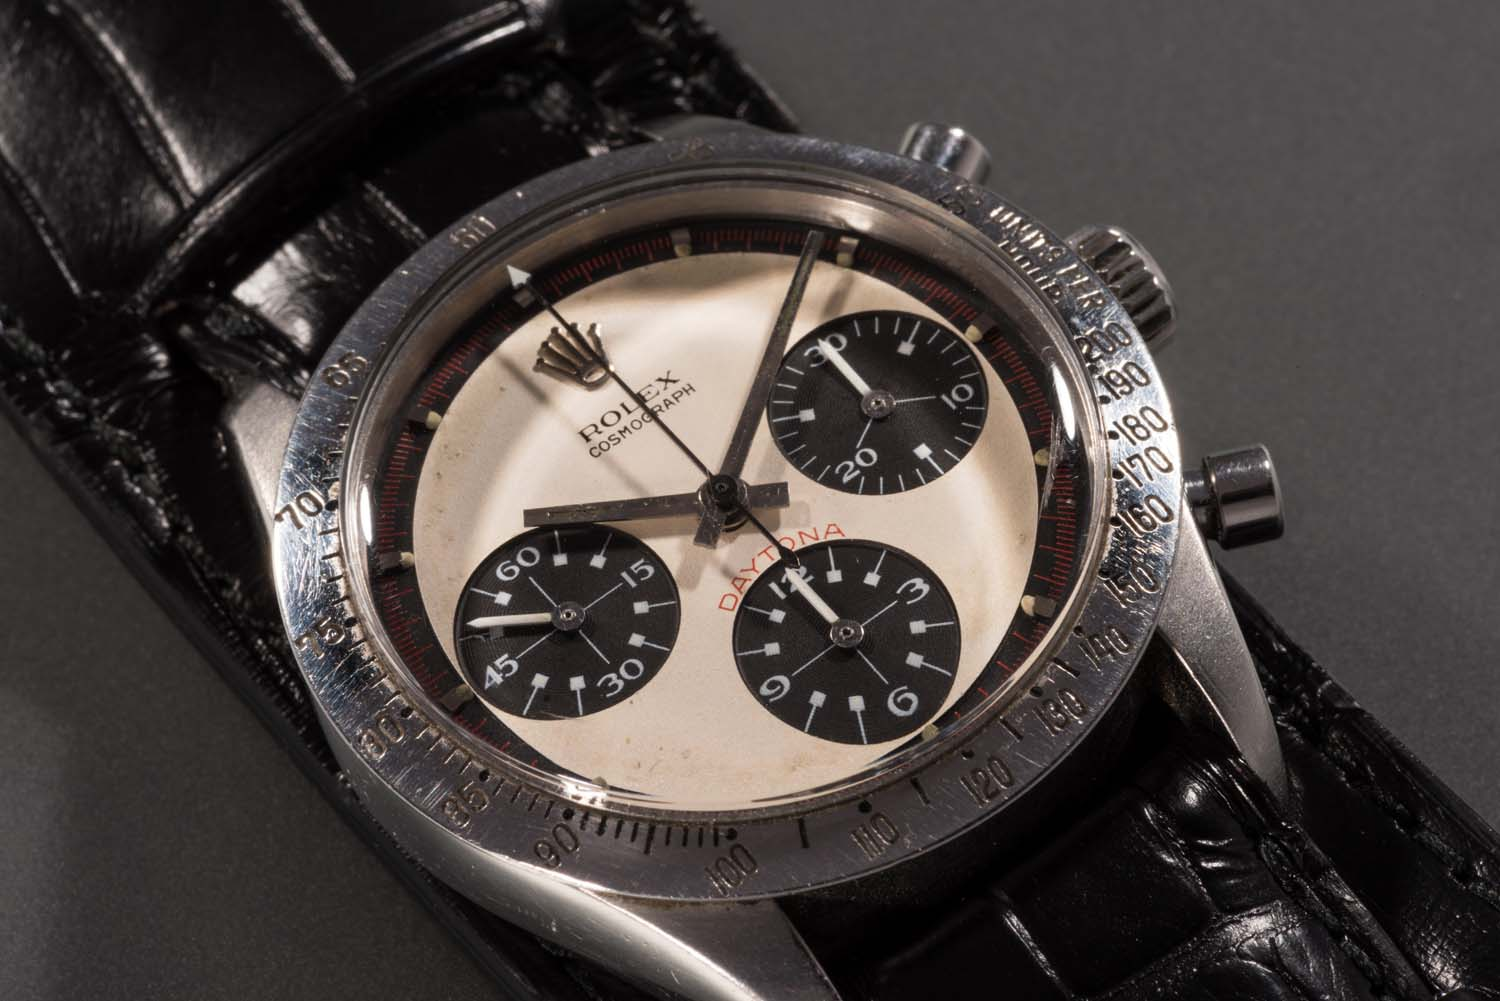 Possibly the most famous wristwatch in the world, Paul Newman's Rolex Daytona ref. 6239 will go on sale on 26 October 2017 at Phillips, New York